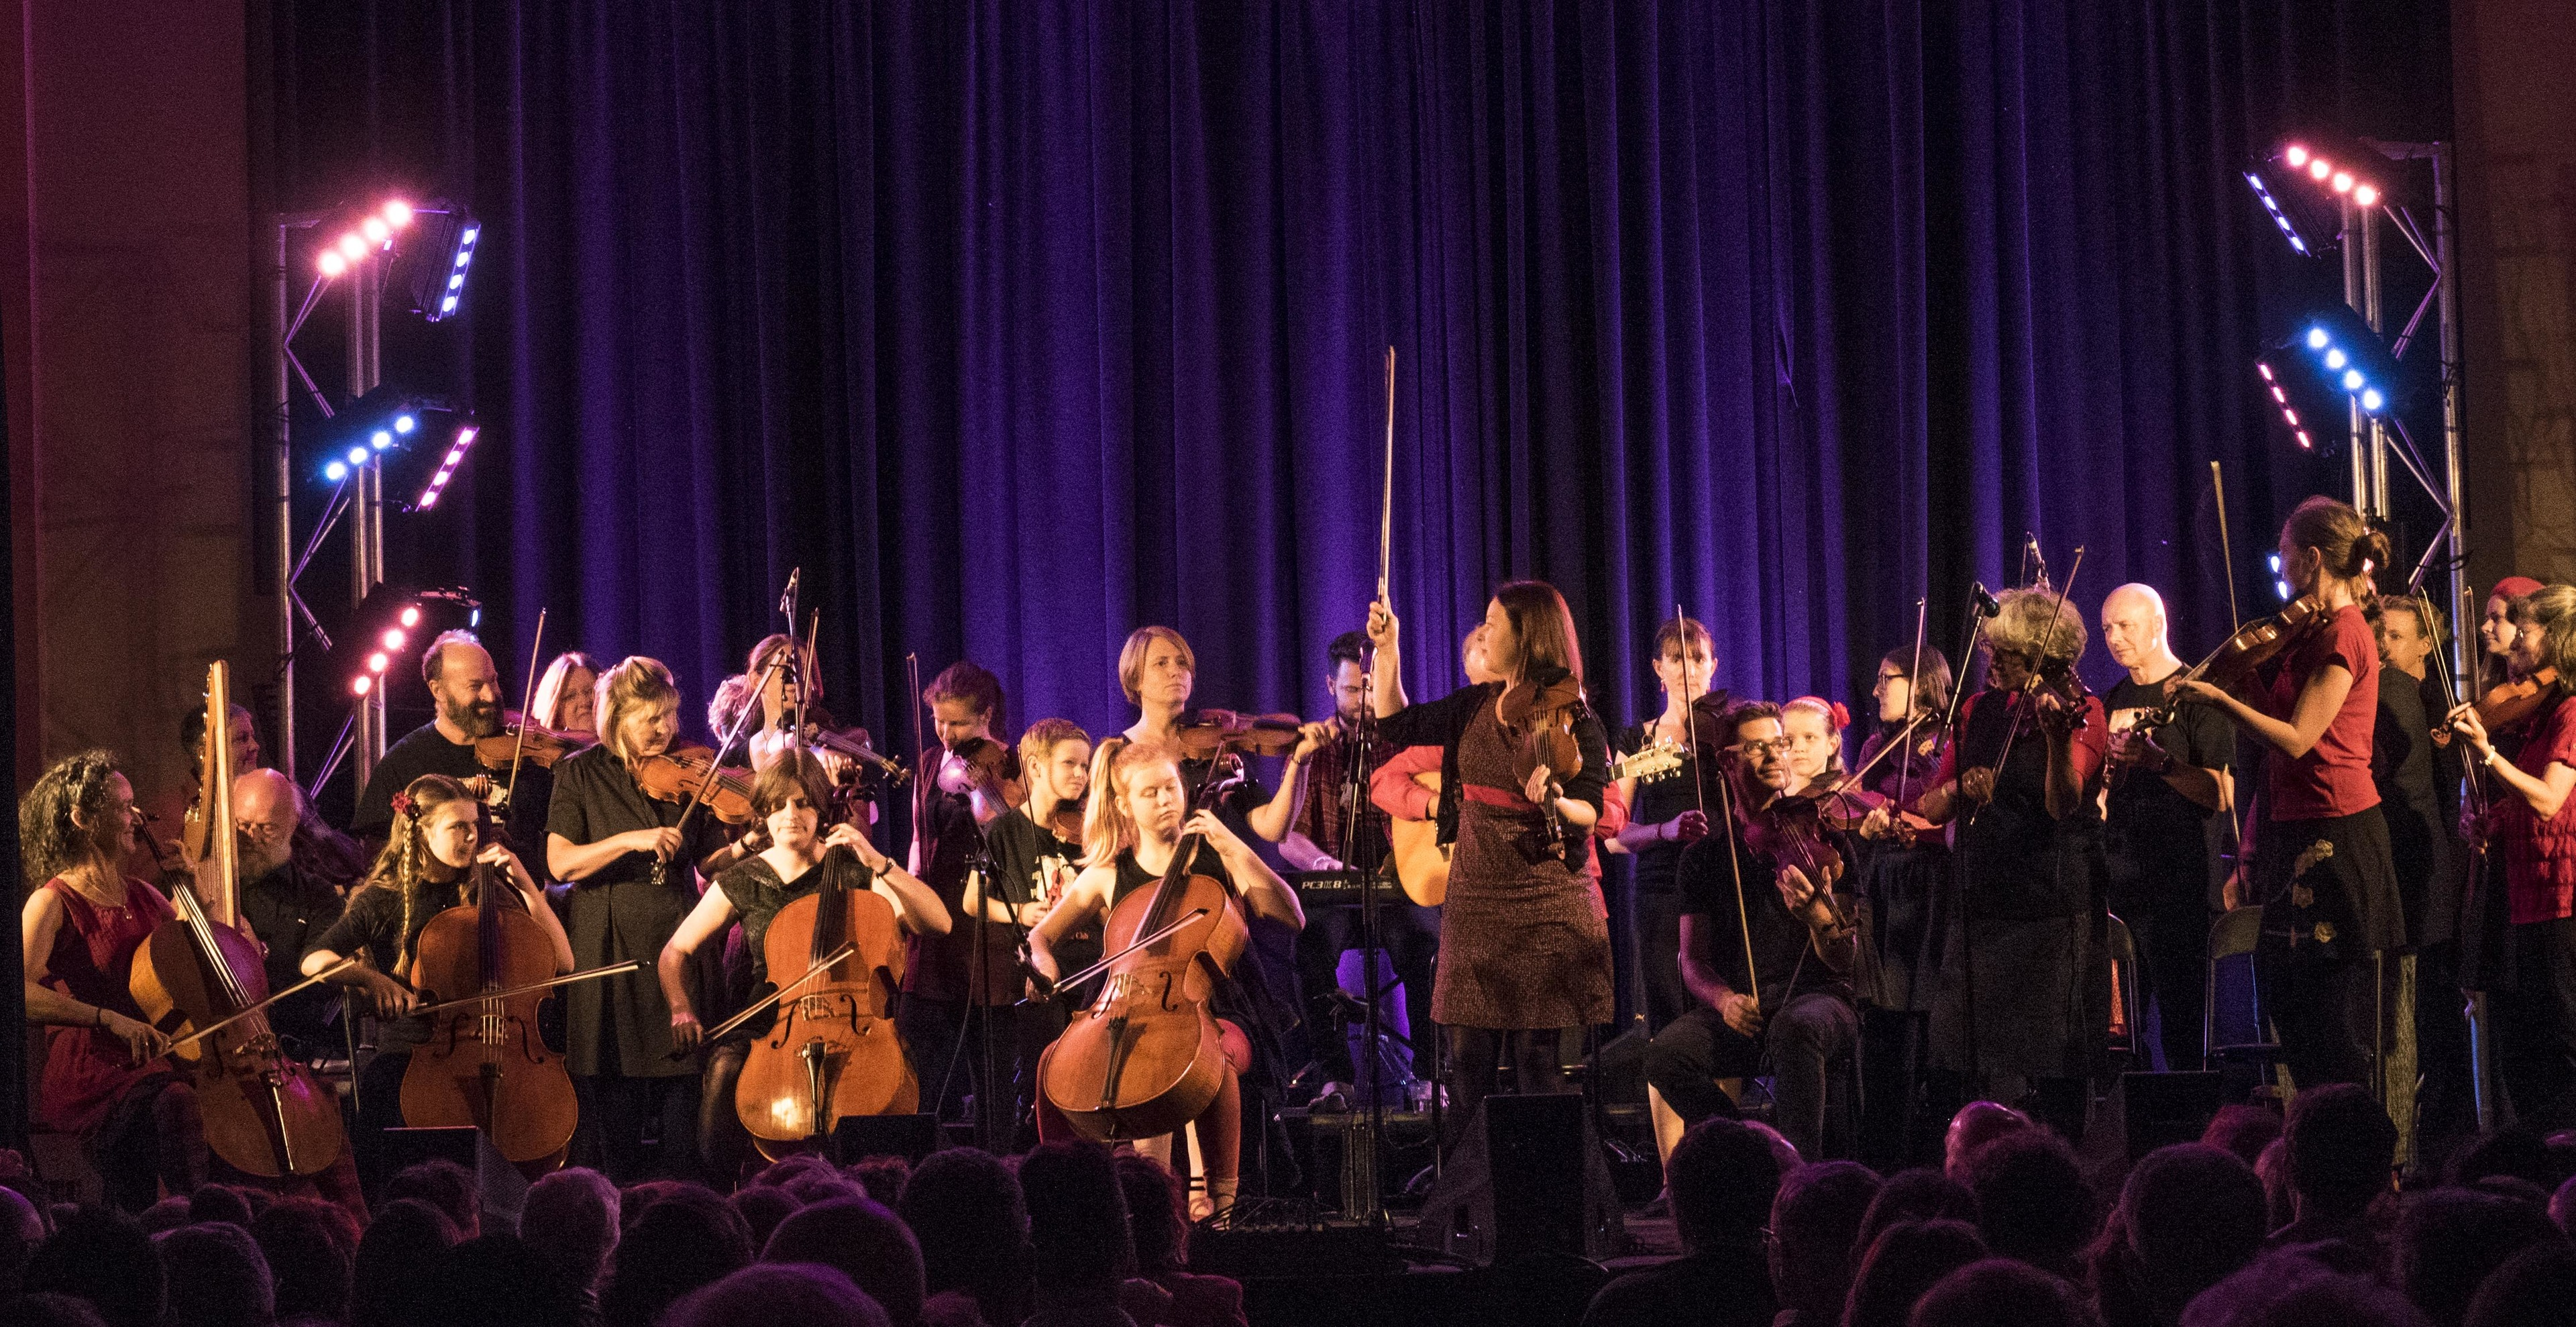 The Melbourne fiddlers performing